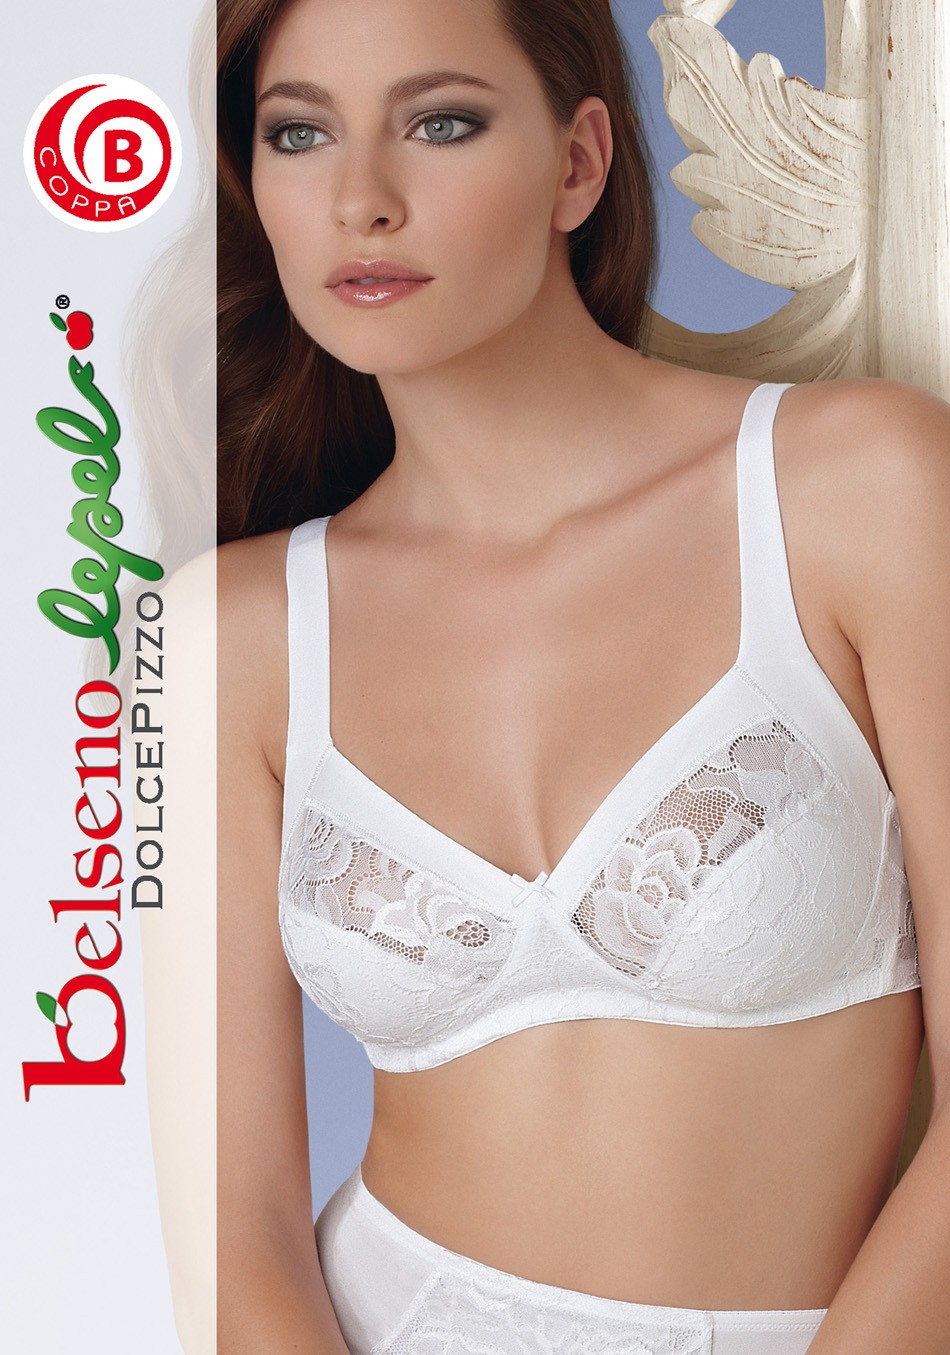 Unwired stretch lace bra - Lepel Belseno art.230